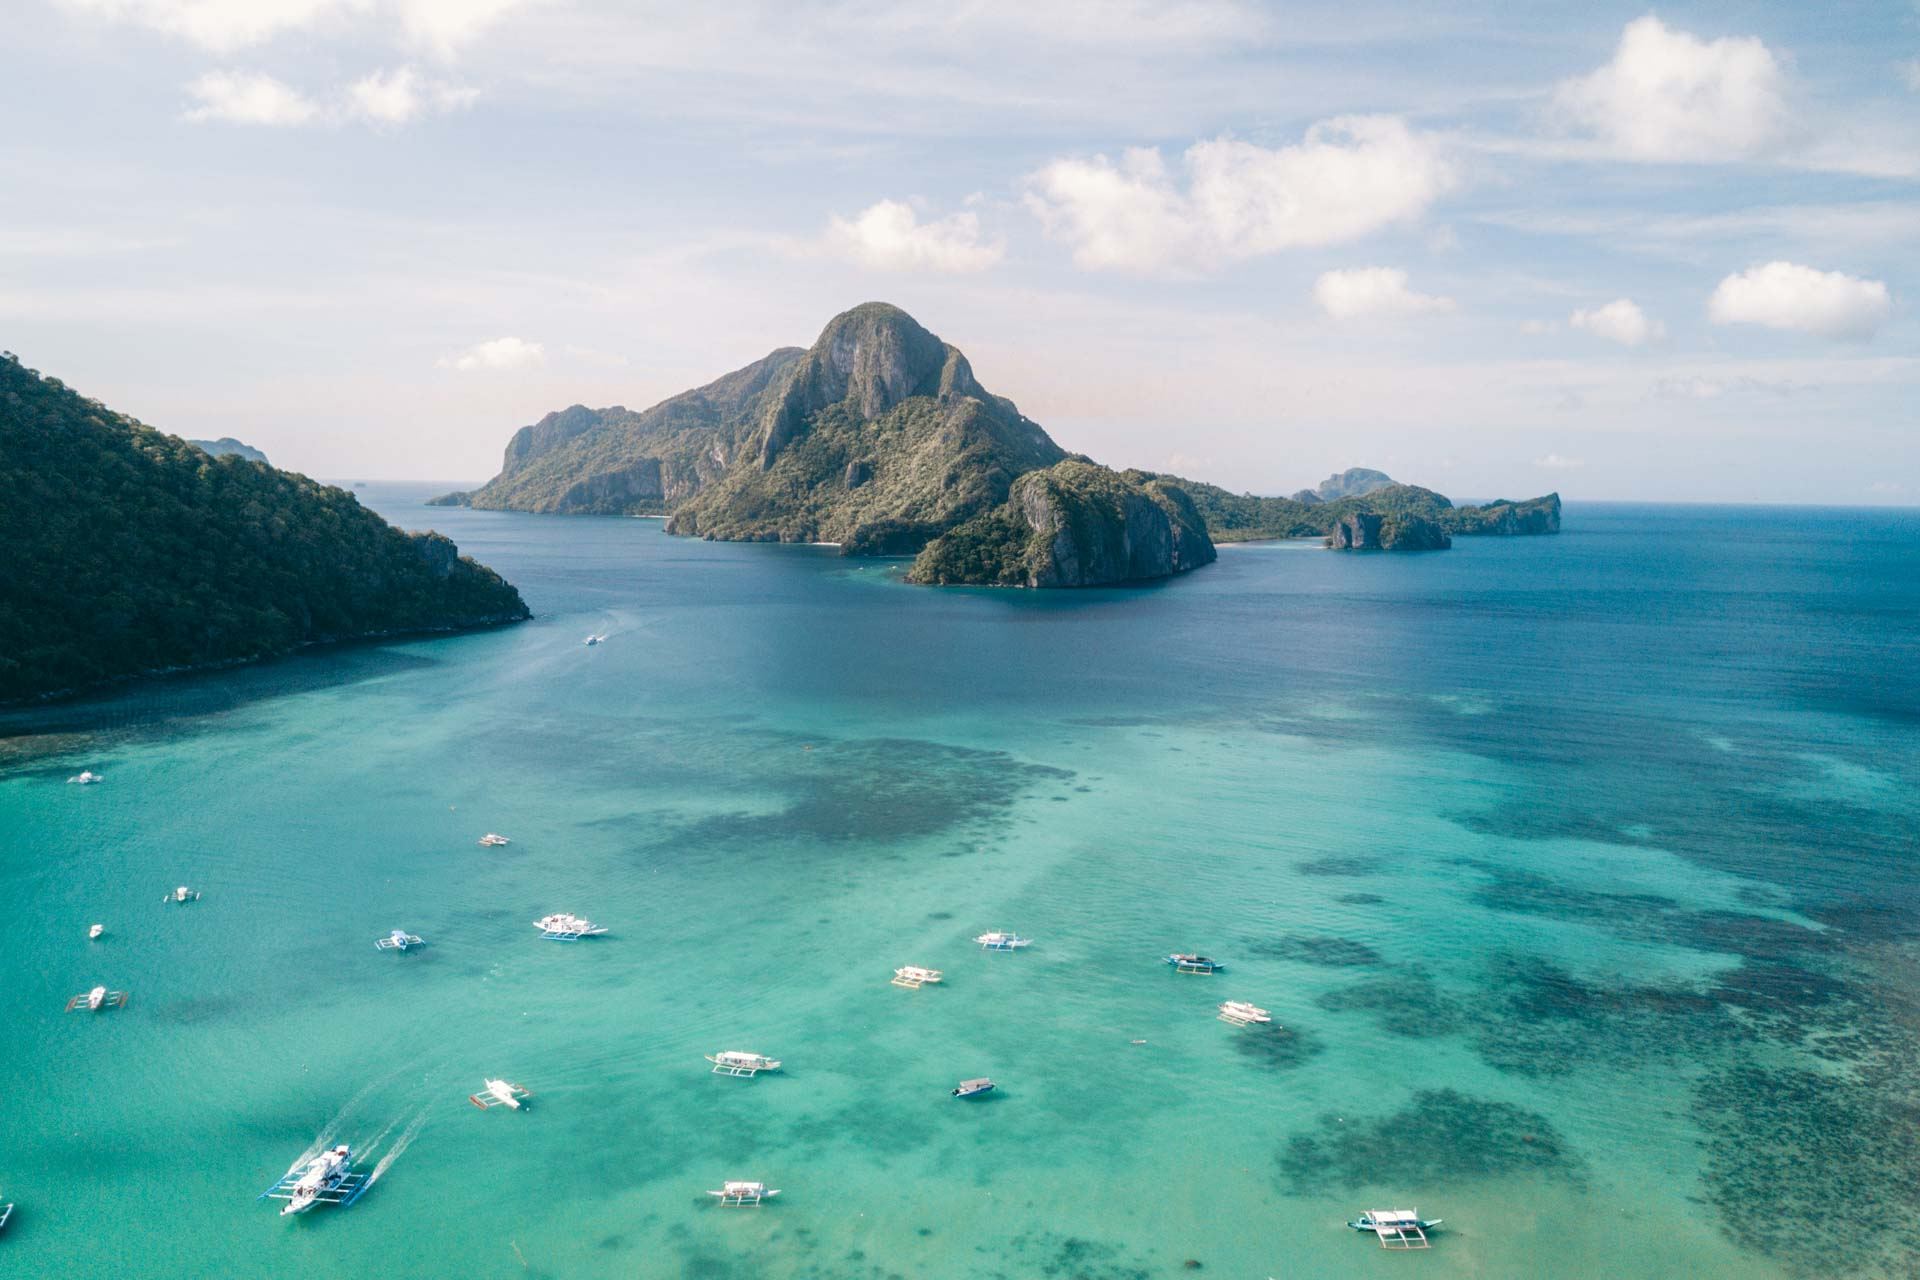 Boat Tour in El Nido: Secret Beaches and Hidden Lagoons